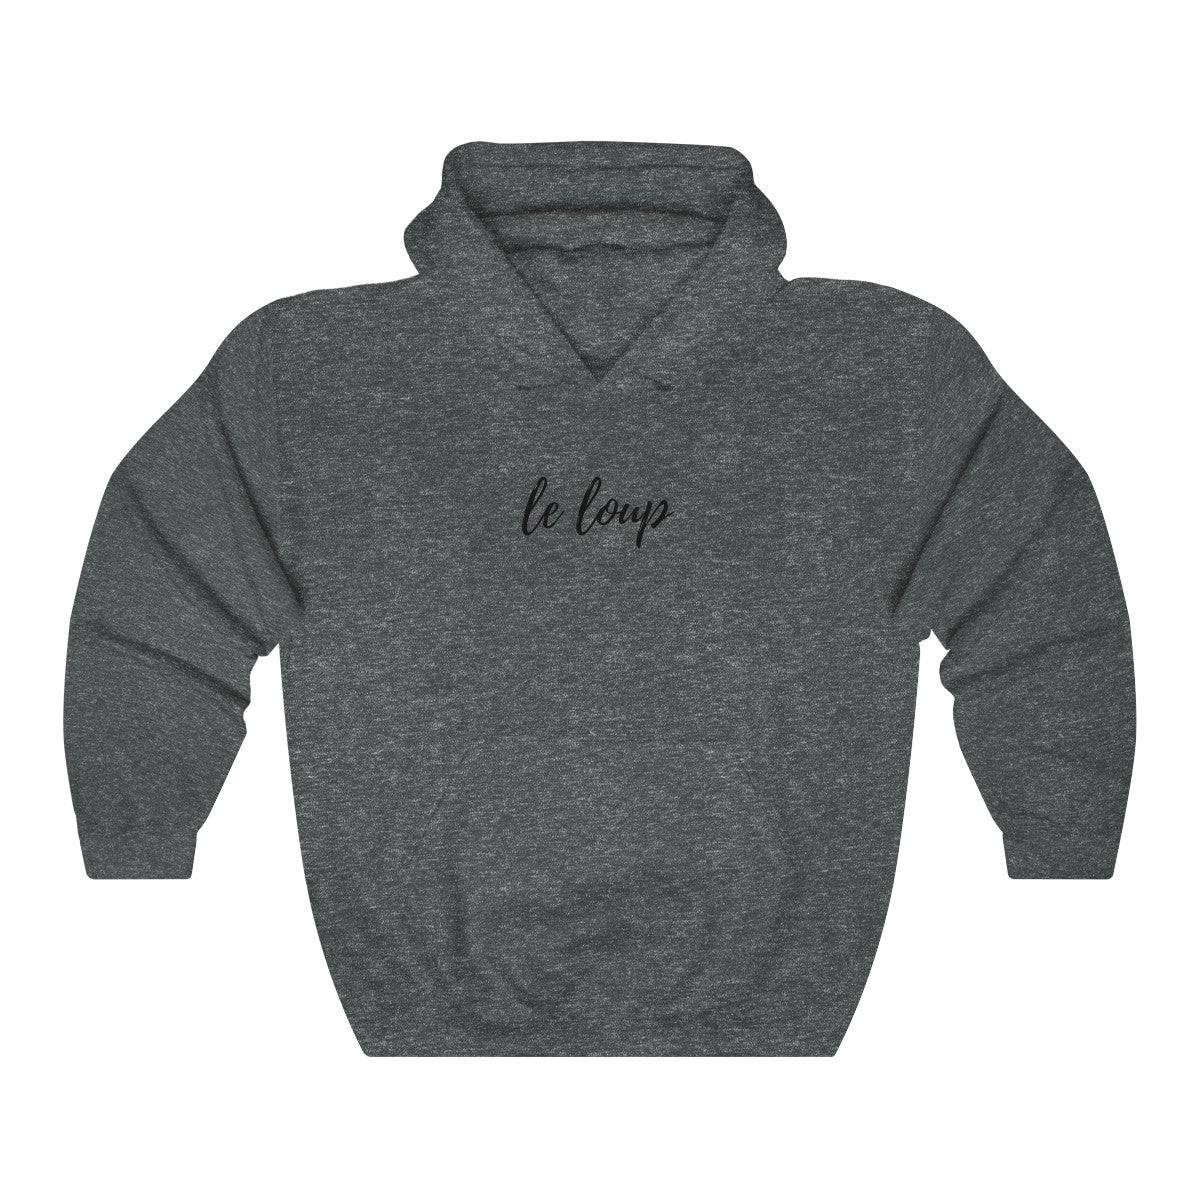 Unisex Heavy Blend™ Hooded Sweatshirt- Le loup - Wolf Kanactus